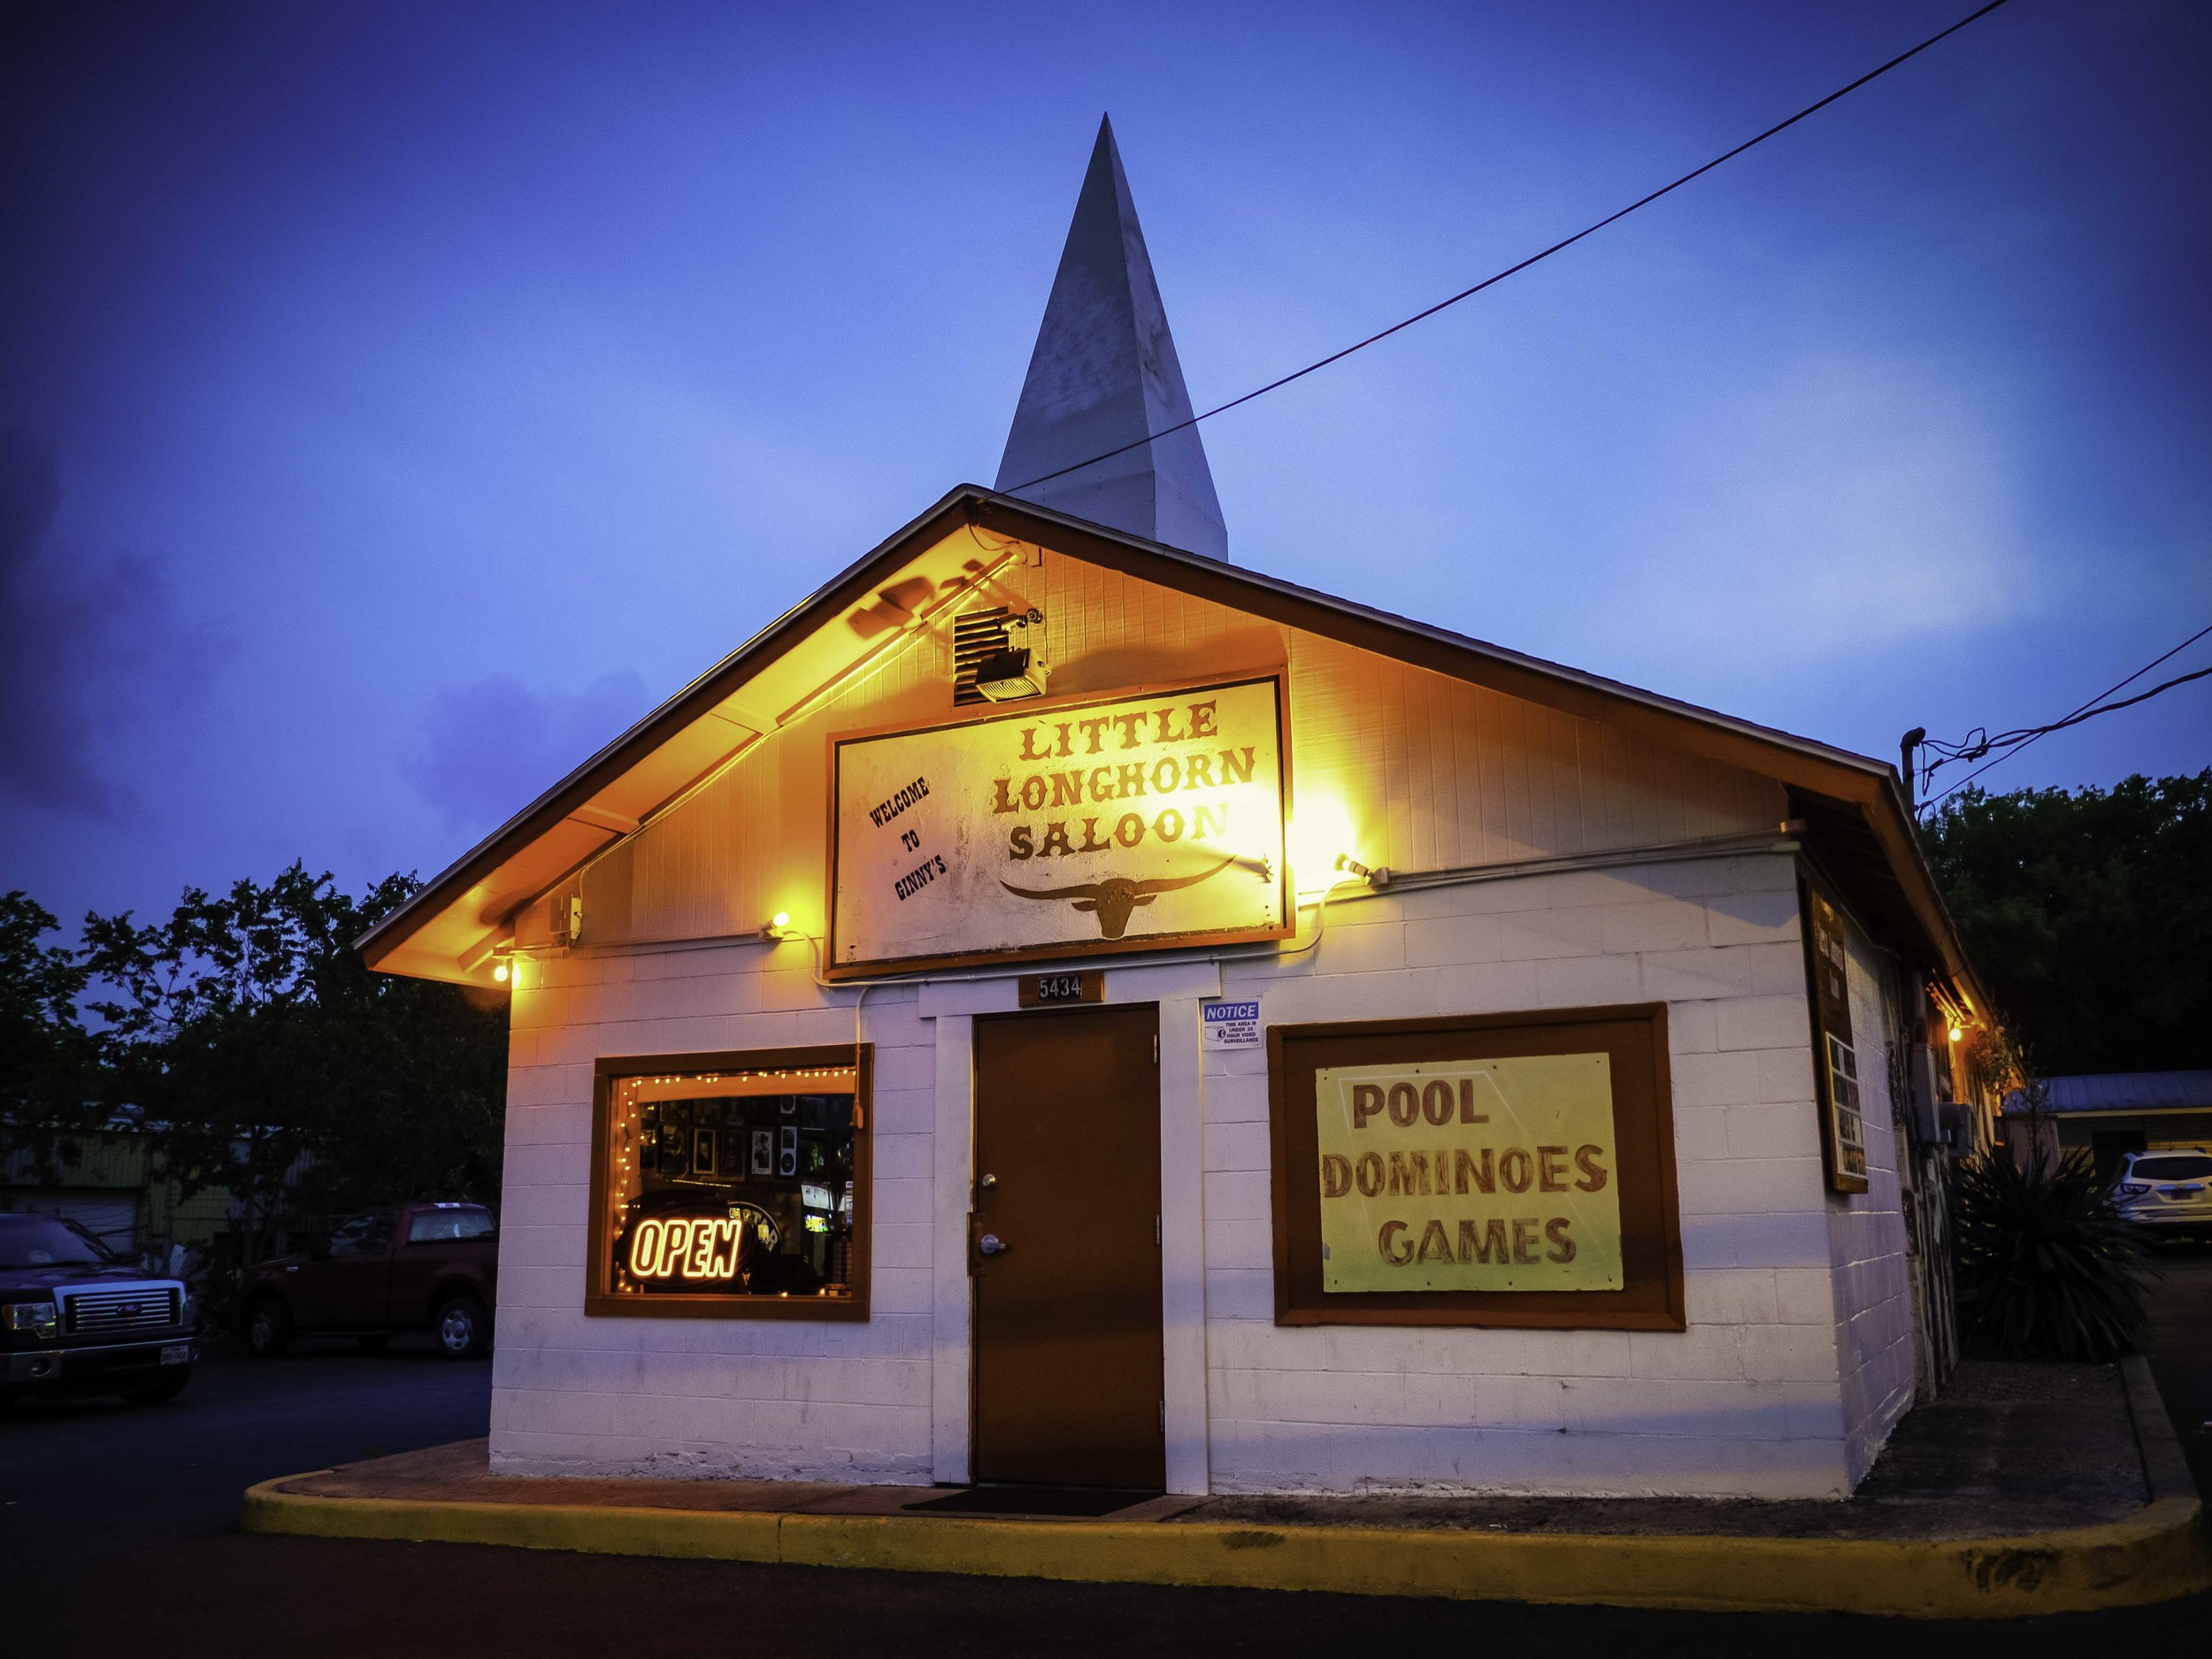 The Little Longhorn Saloon has been on Burnet Road for as long as I can remember. I've never been inside.